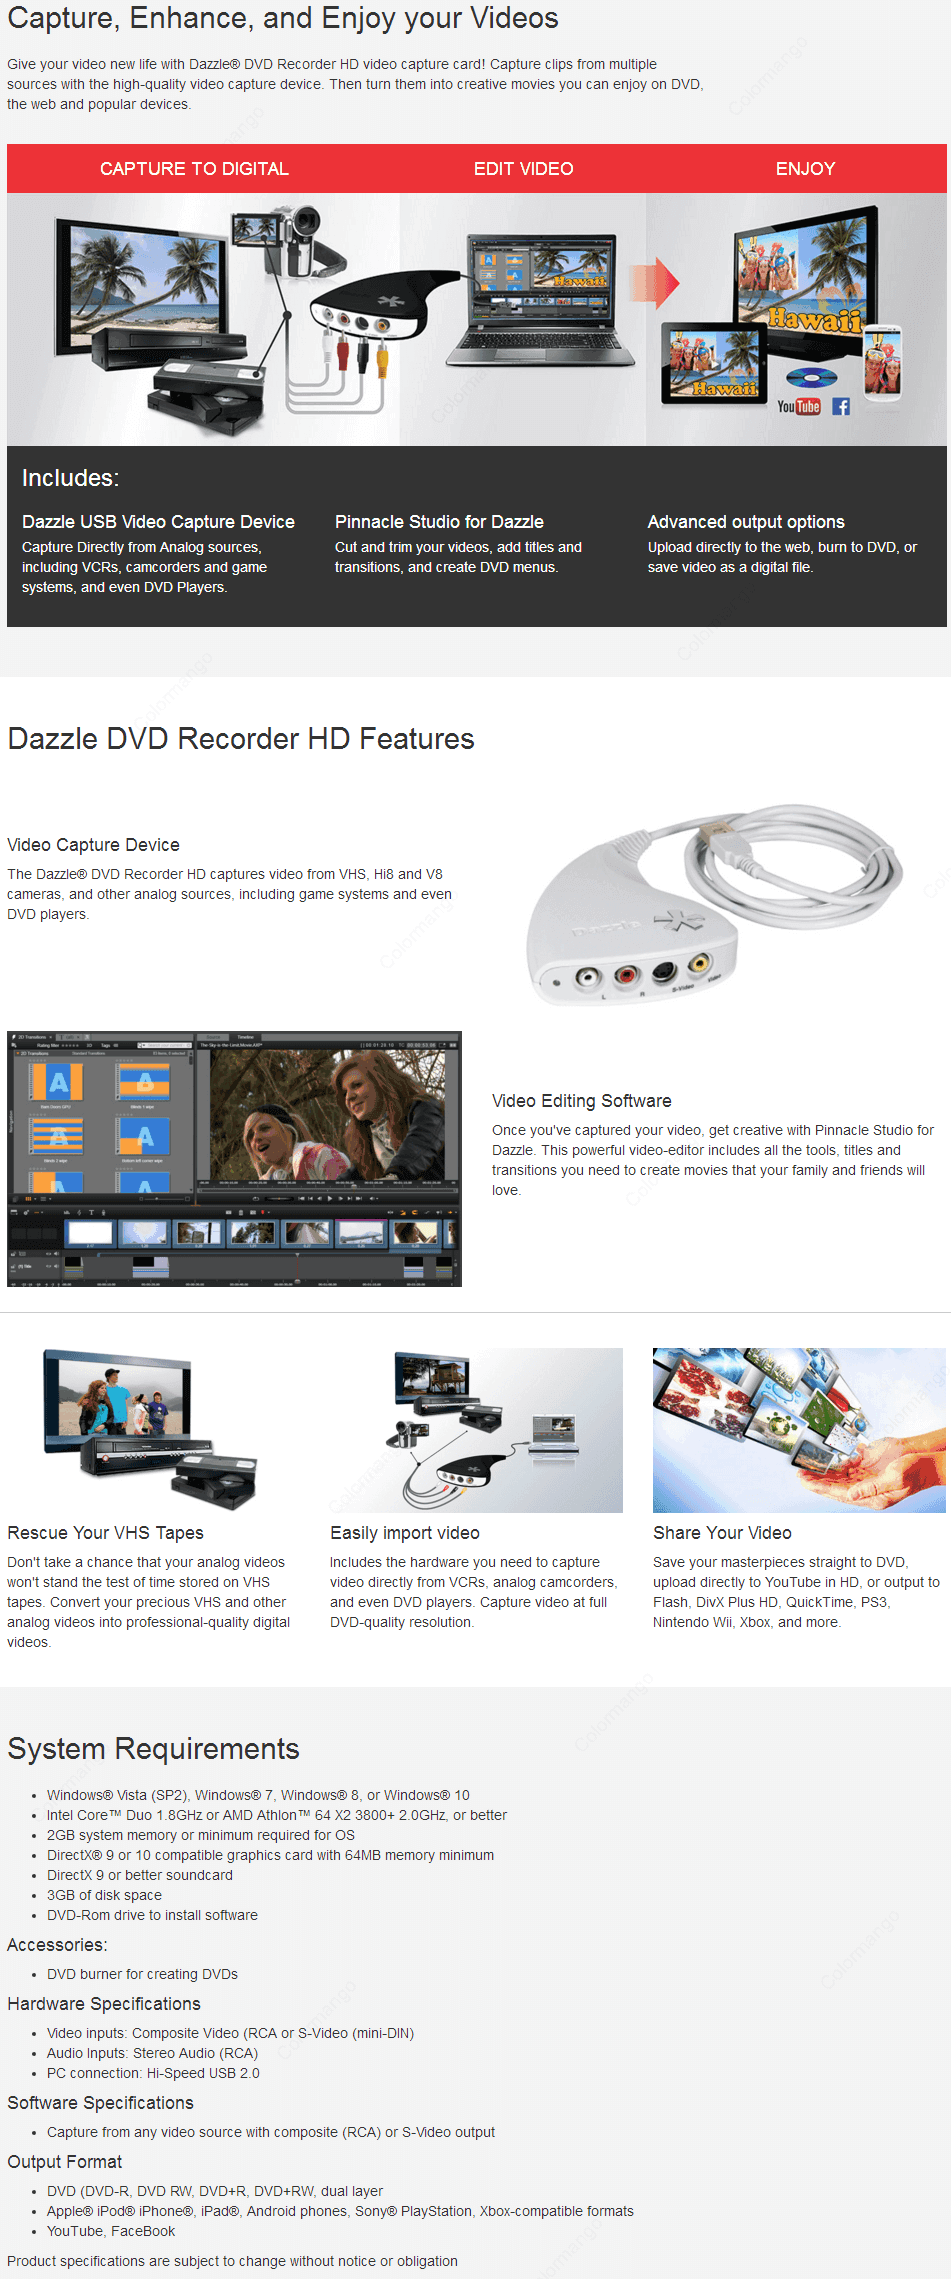 Dazzle DVD Recorder HD key Features